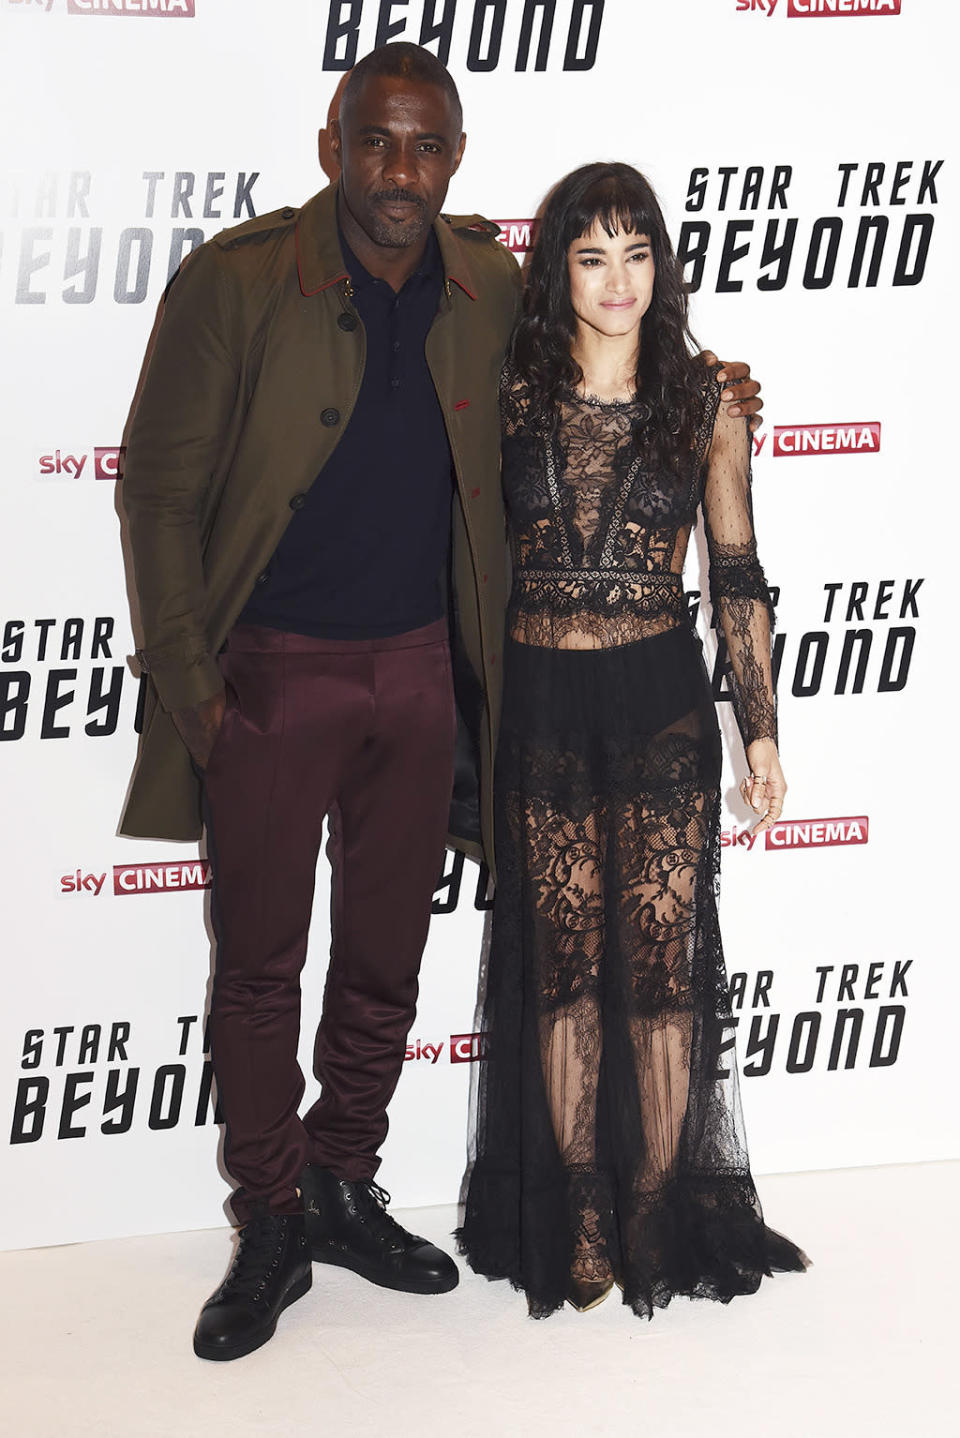 <p>Idris Elba (Krall) and Sofia Boutella (Jaylah) in London on July 12, 2016. The two new additions to the <i>Star Trek </i>universe star as a villain and Enterprise ally, respectively. <i>(Photo: Dave J Hogan/Getty Images)</i></p>